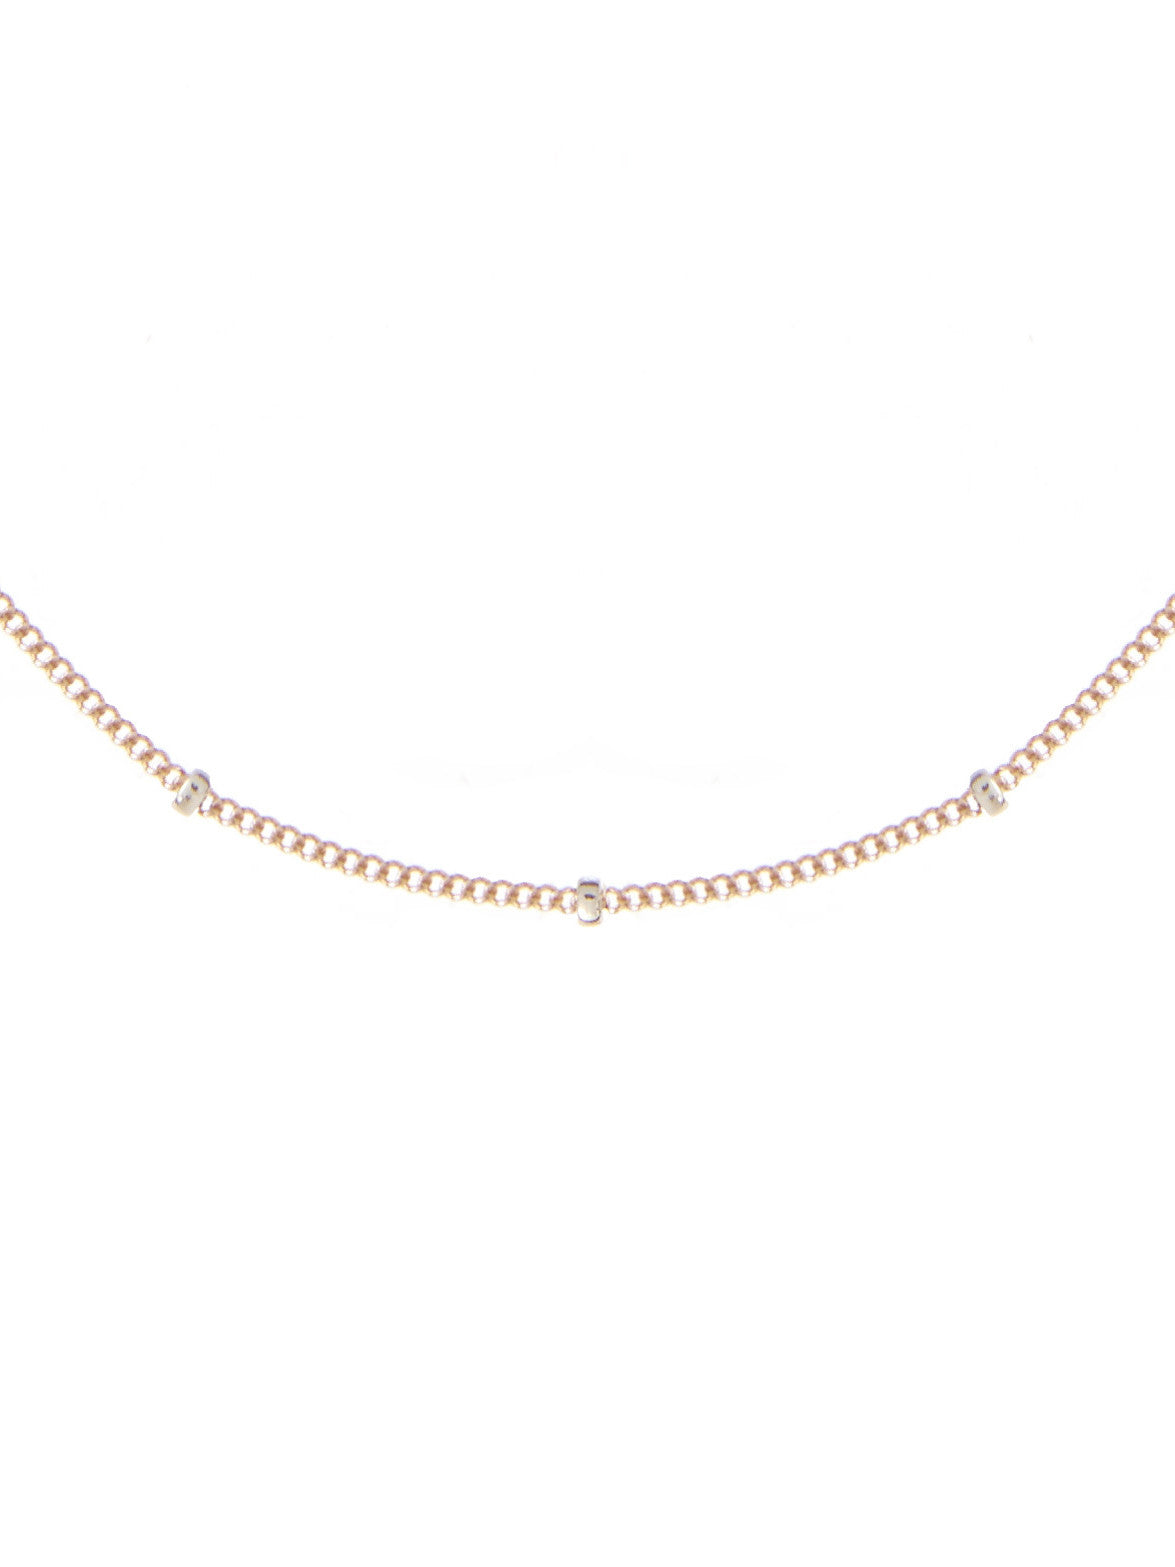 Beaded chain rose gold